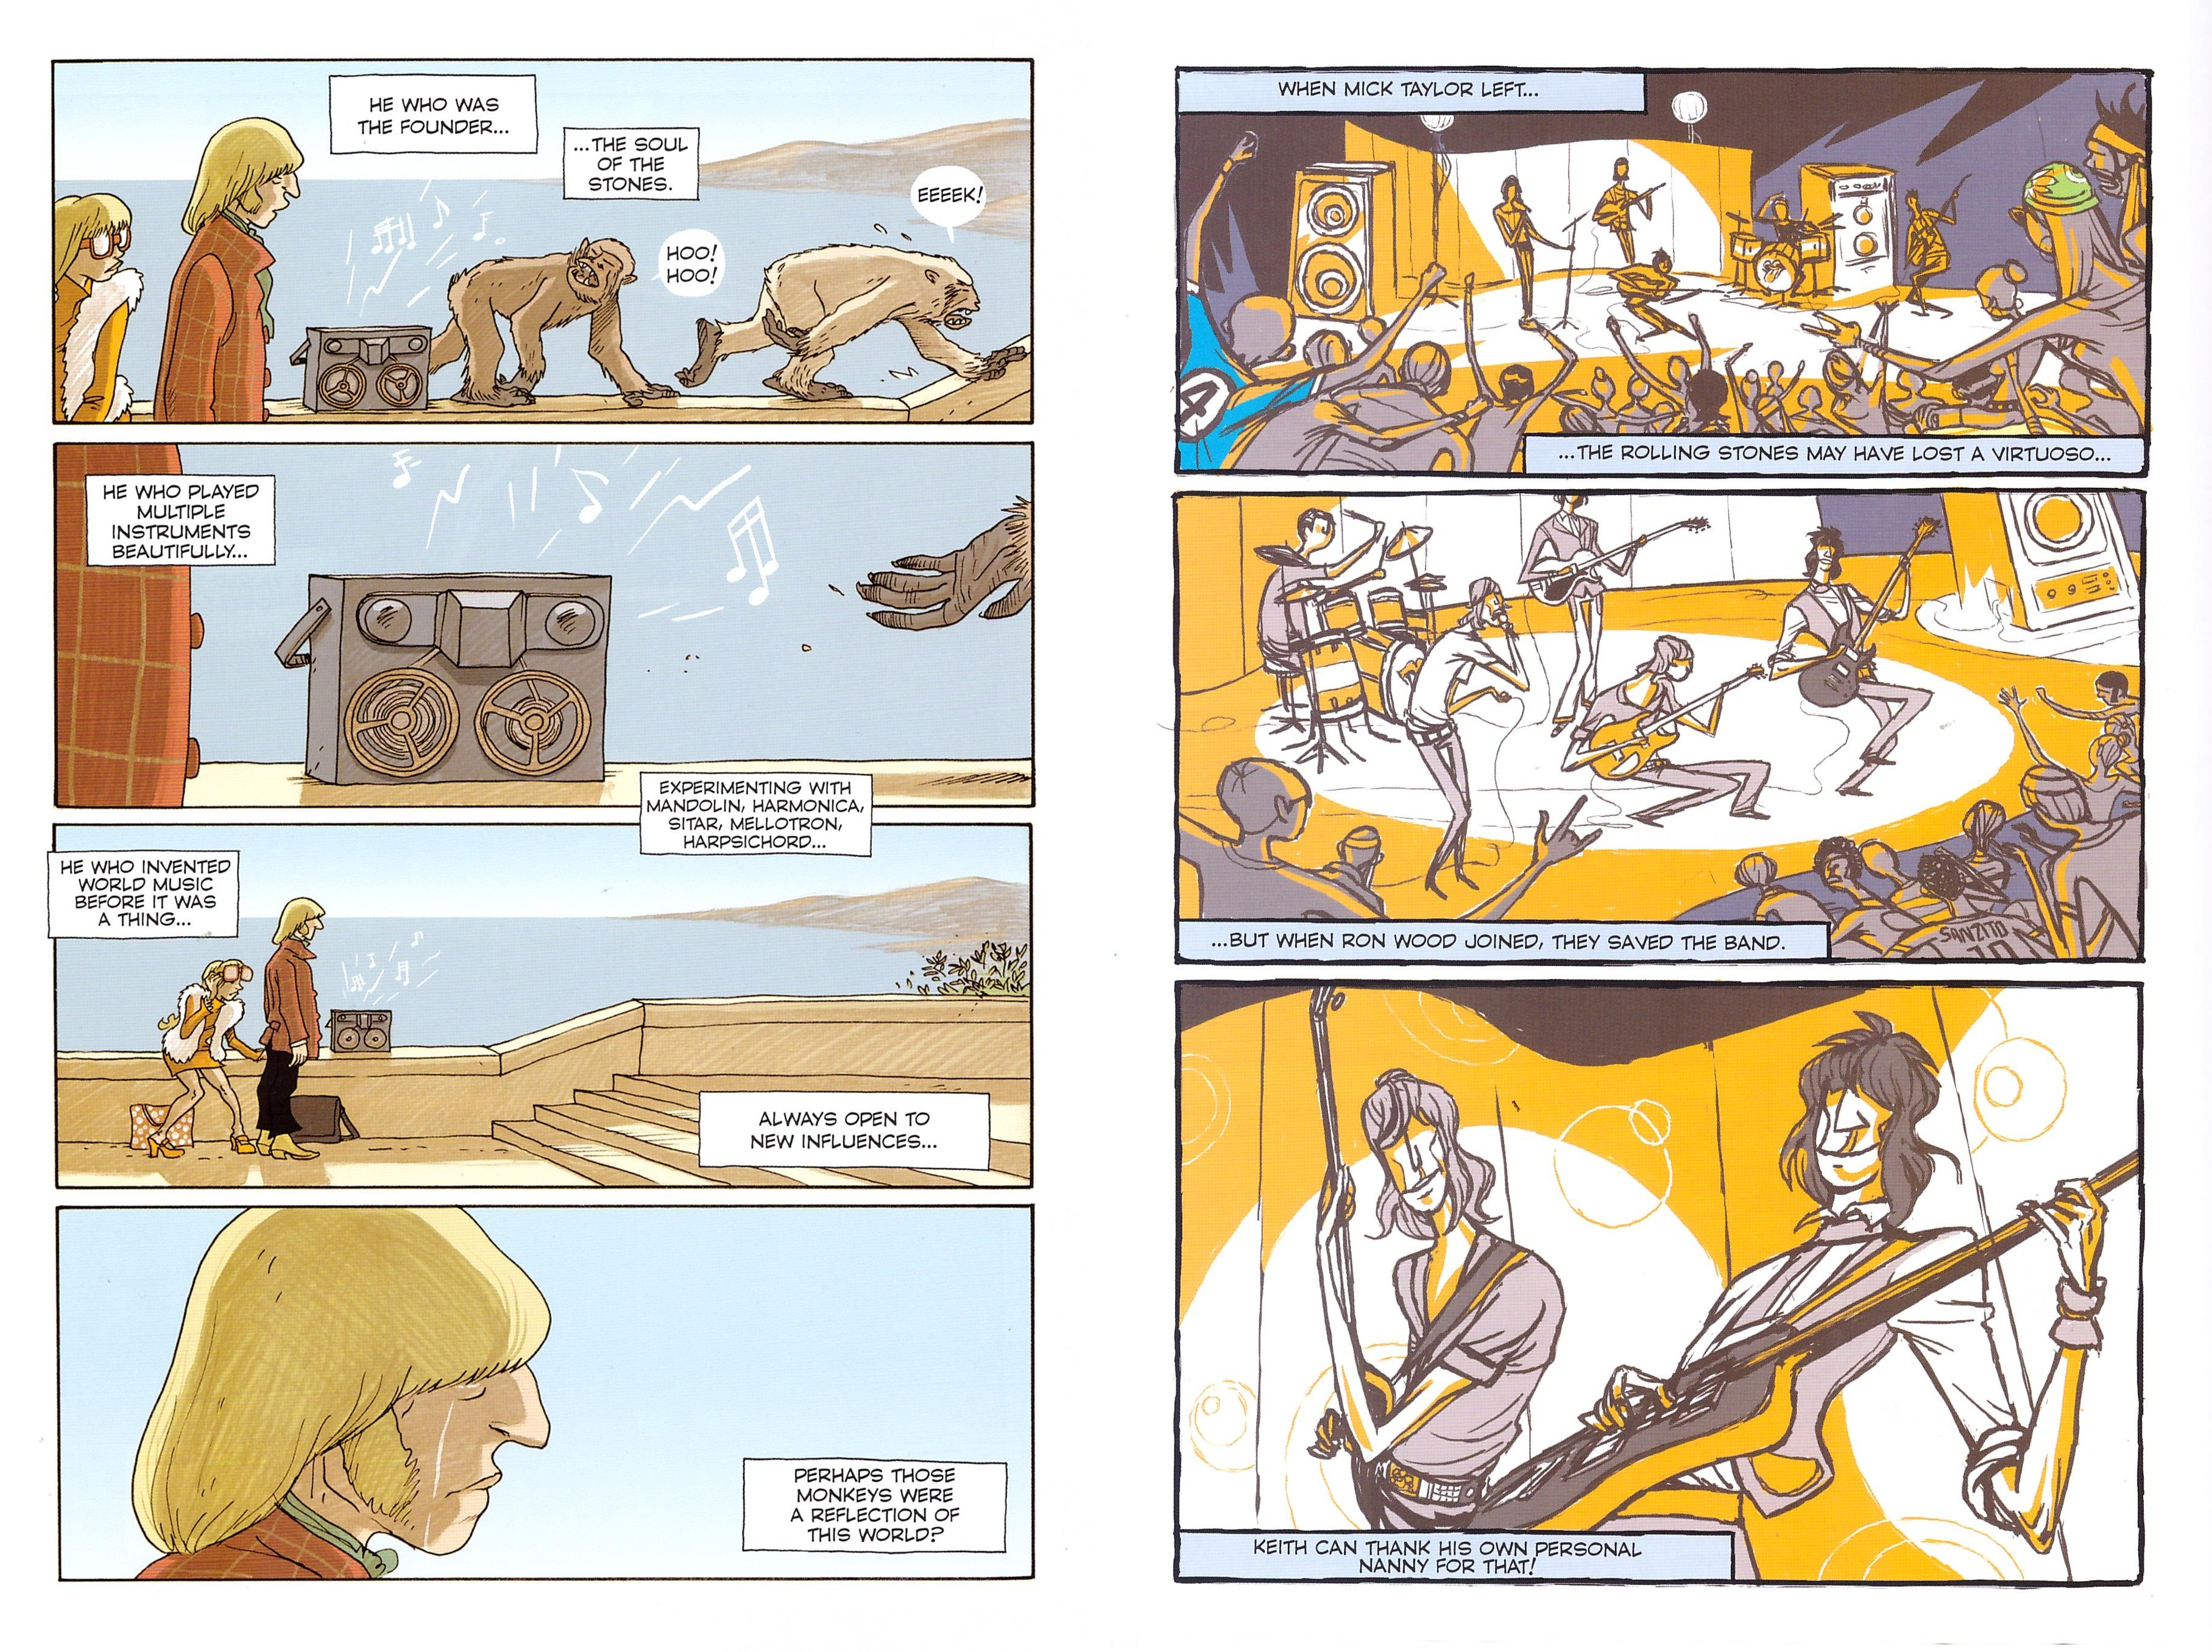 The Rolling Stones in Comics review